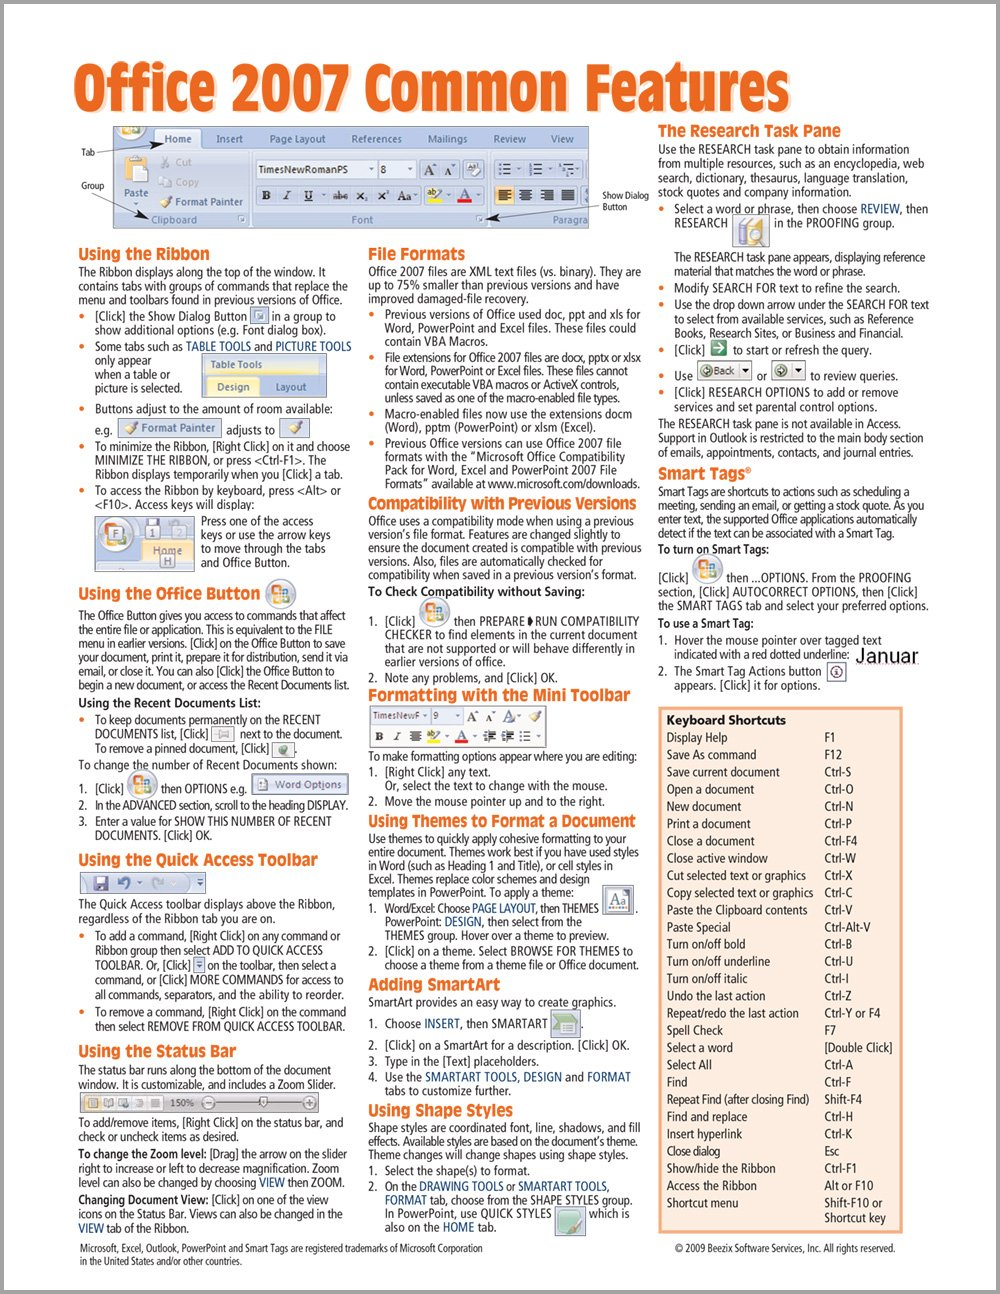 Read Online Office 2007 Common Features Quick Reference Guide (Cheat Sheet of Instructions, Tips & Shortcuts - Laminated Card) PDF